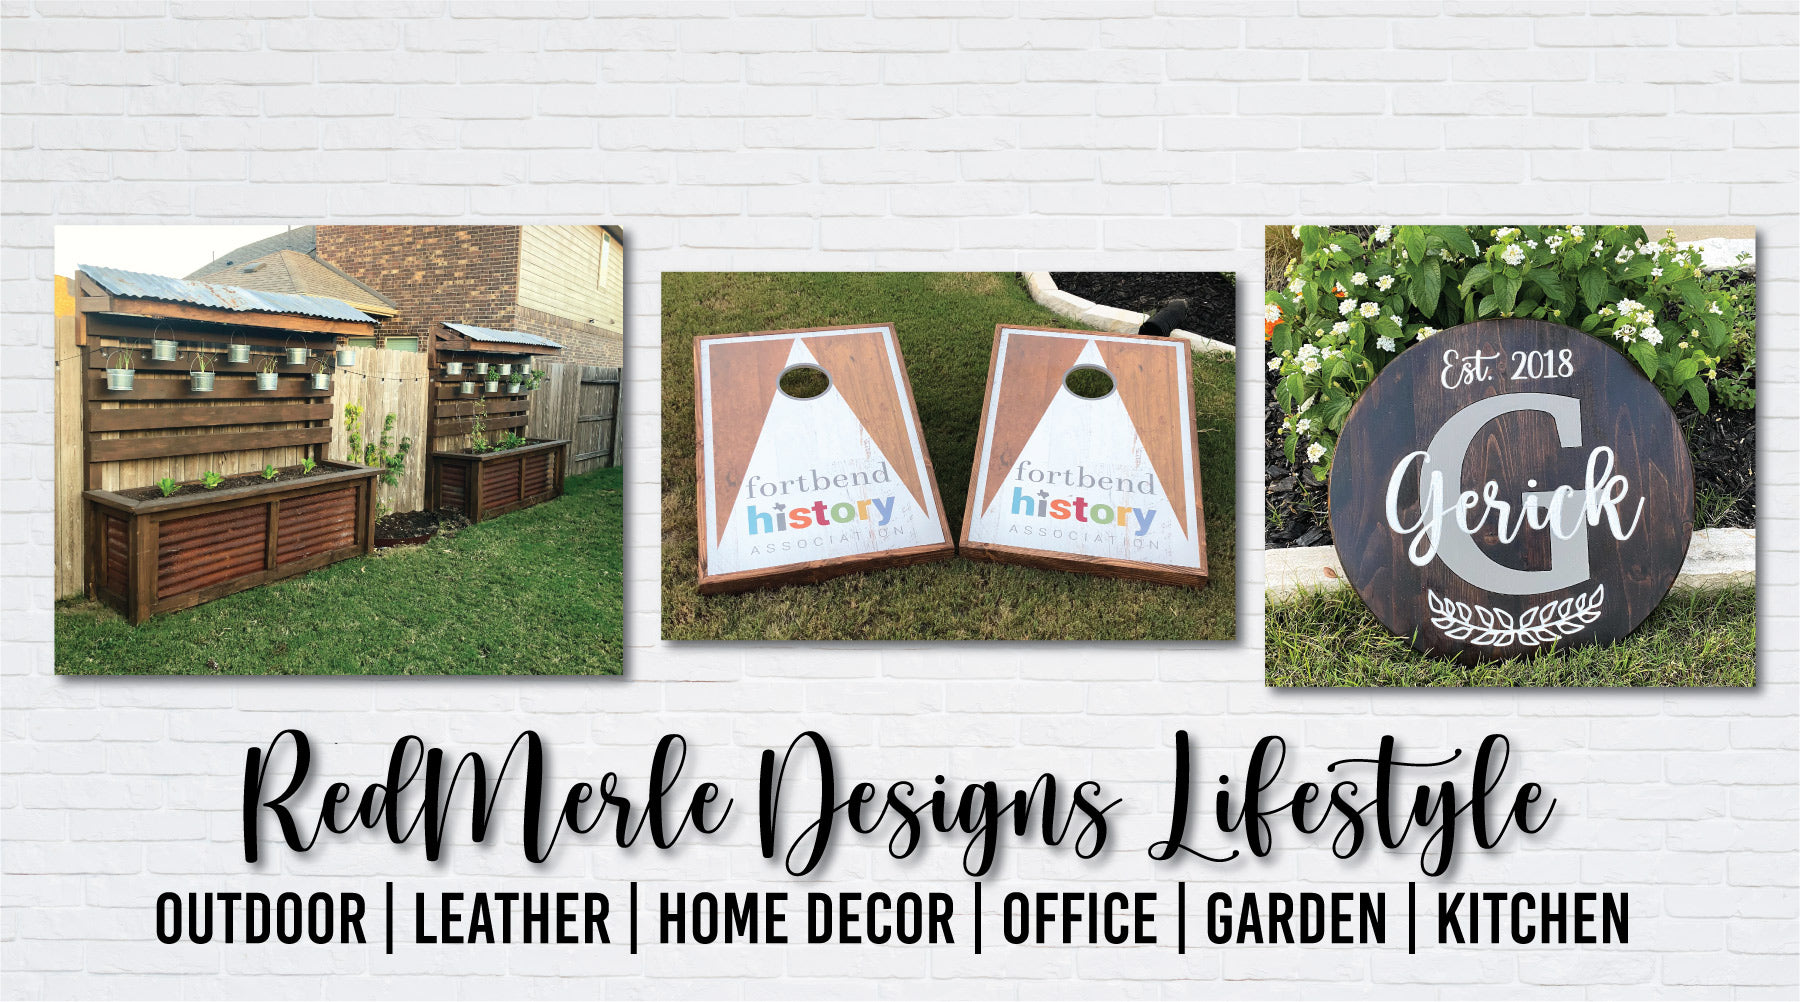 Backyard Garden with custom corn hole board and lazy susan